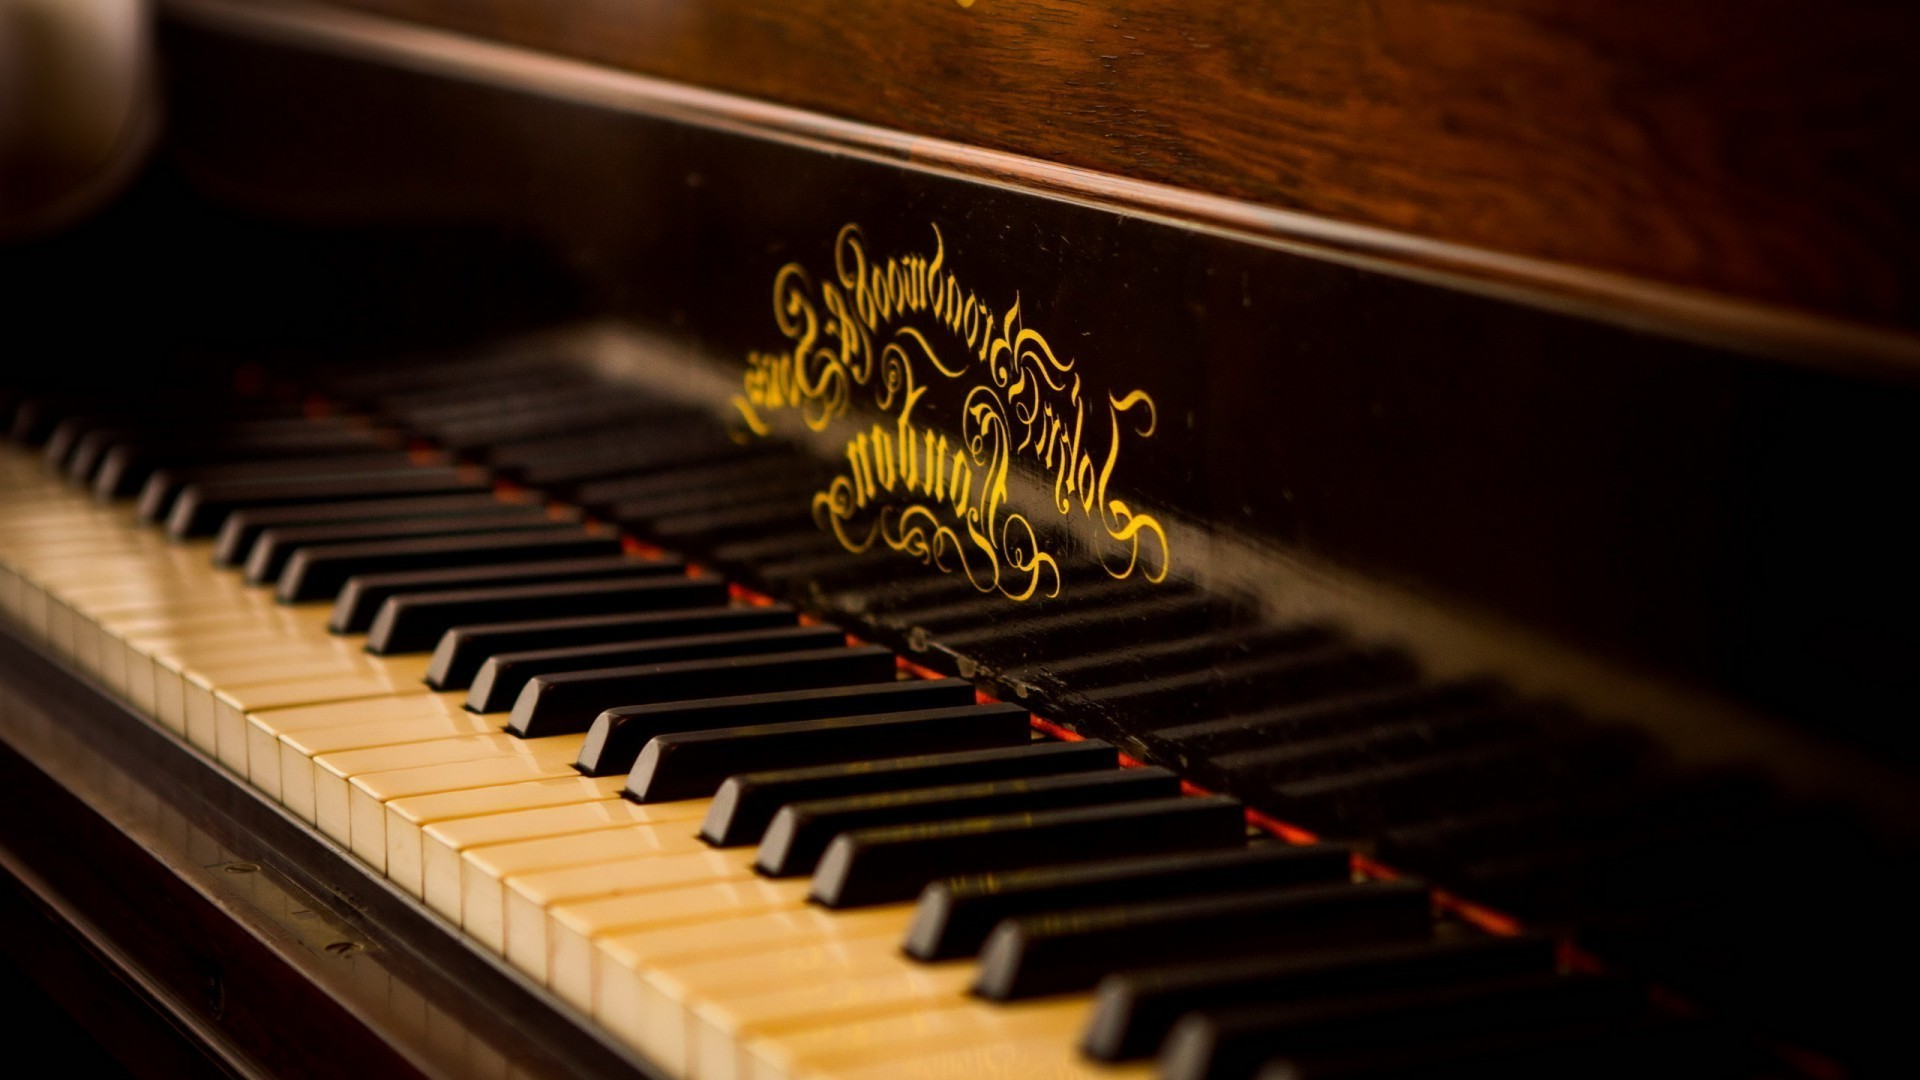 The Piano - Phone Wallpapers-7271